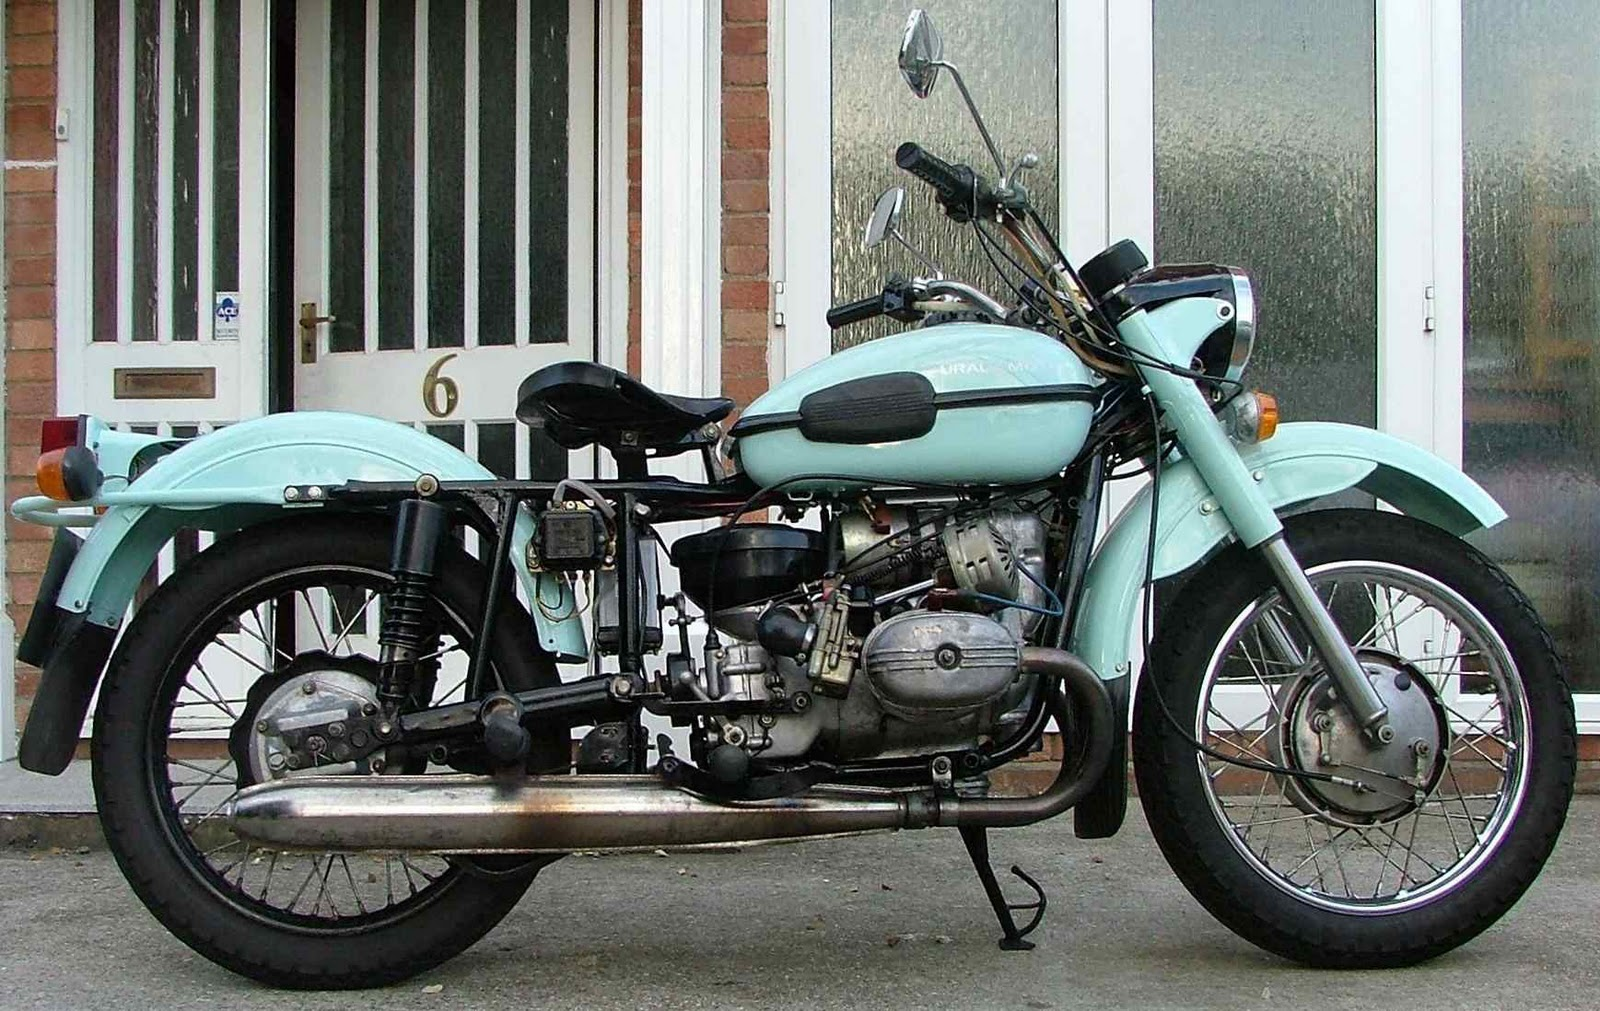 Ural M 66 with sidecar 1974 images #127375